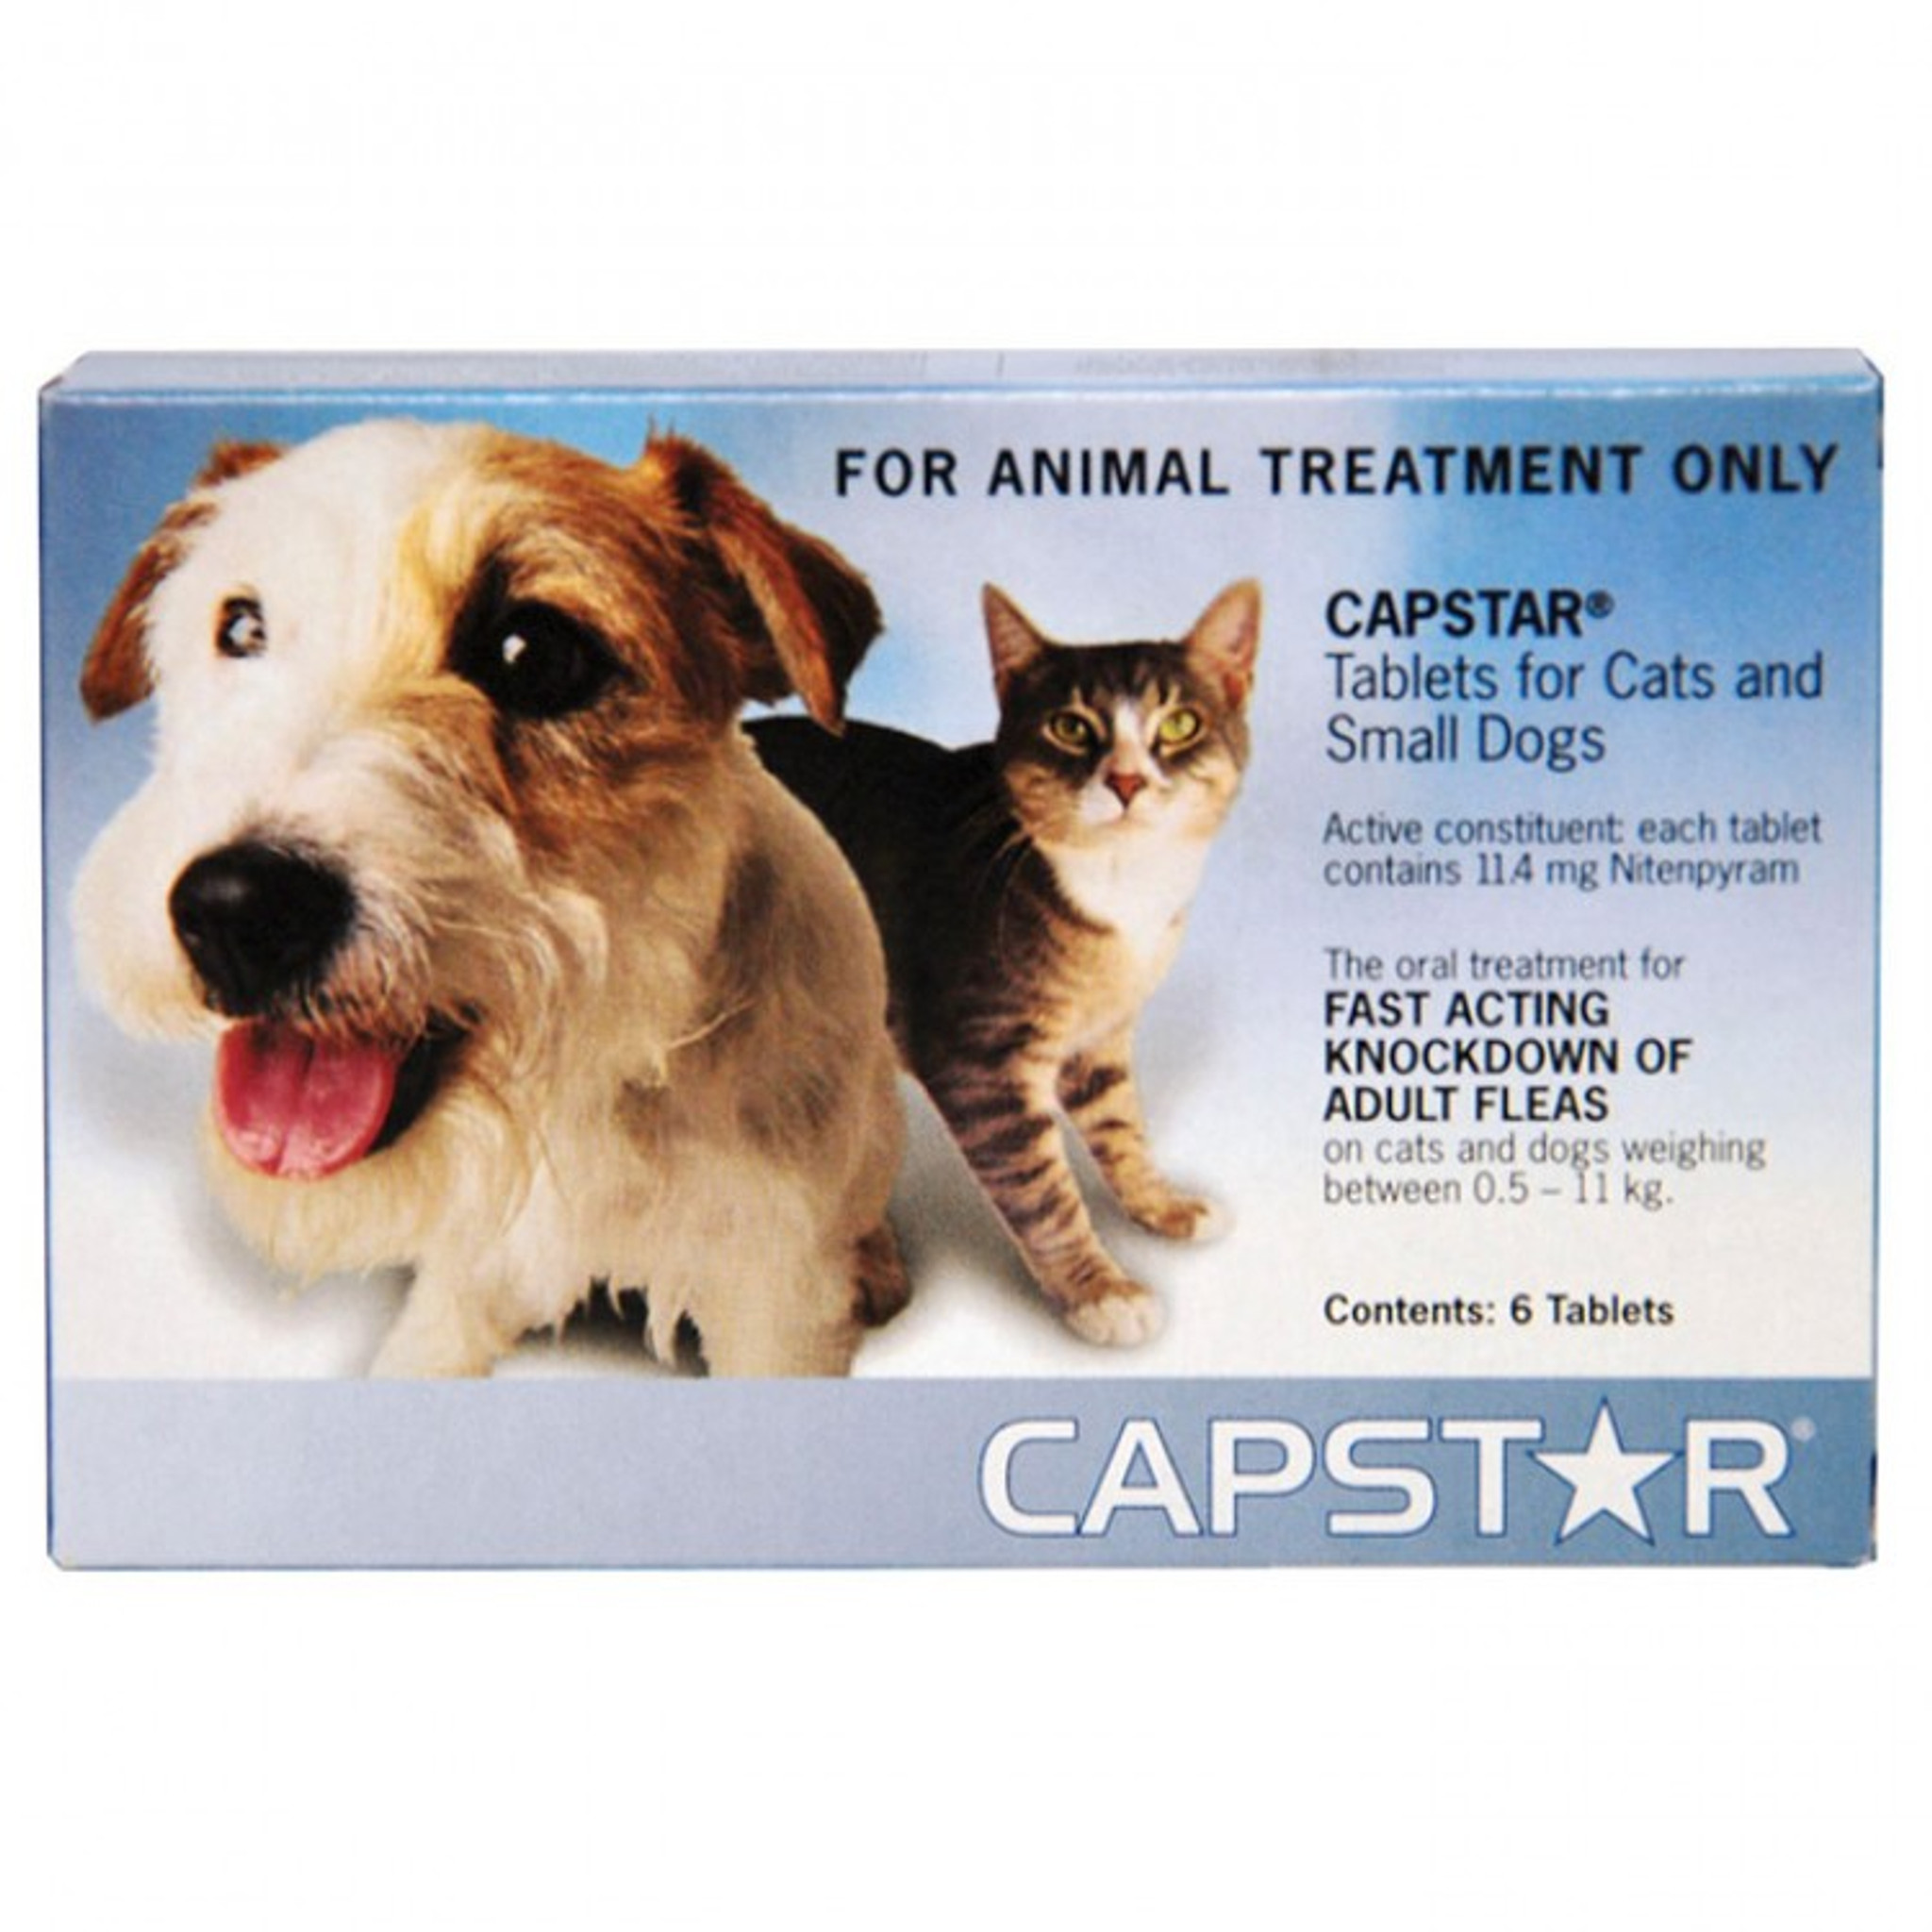 Capstar Flea Treatment Tablets For Small Dogs Cats Up To 25 Lbs Up To 11 Kg Blue 6 Tablets Sierra Pet Meds